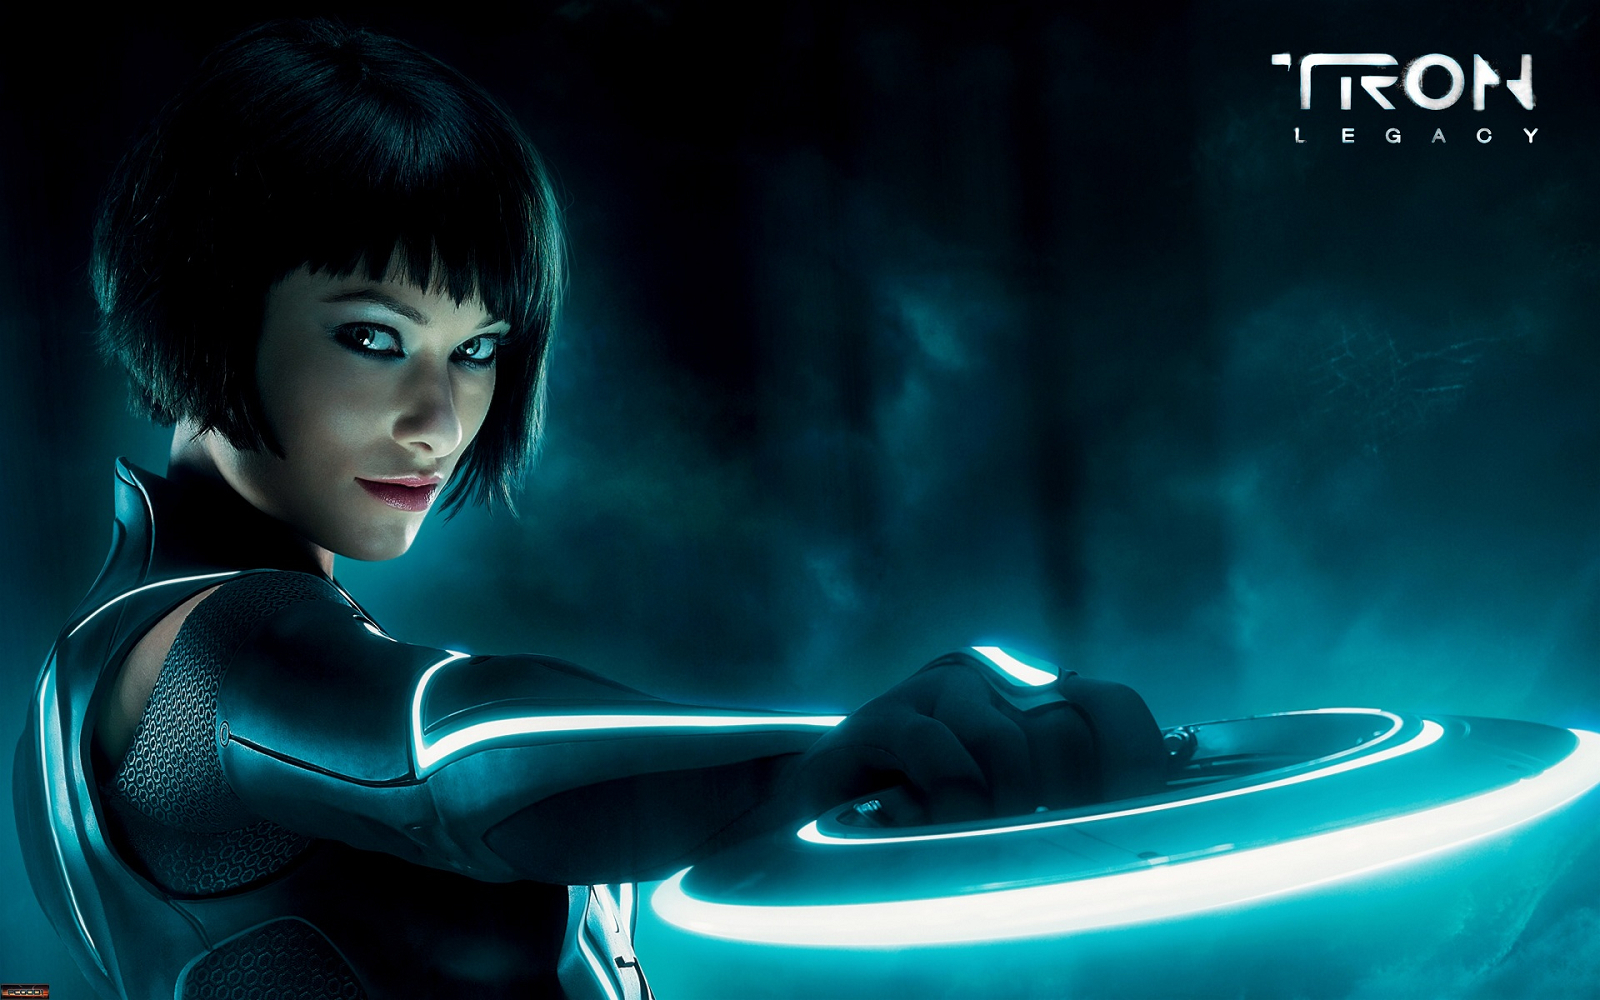 olivia Wilde deviantart Tron HD Wallpaper